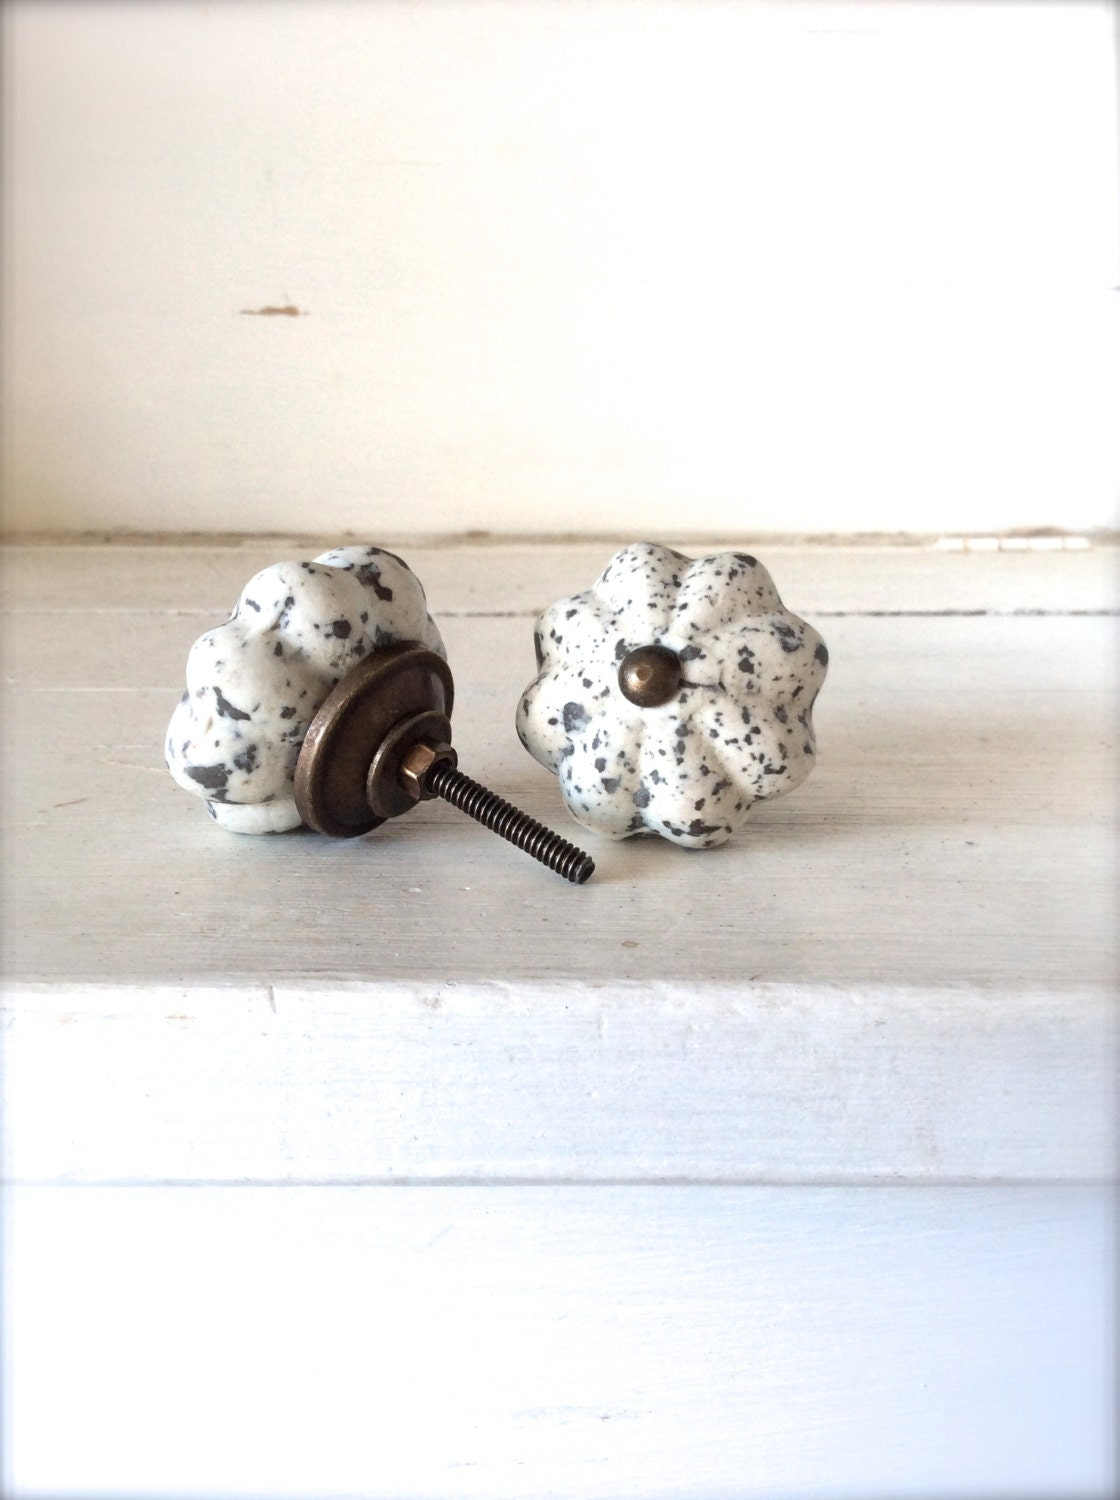 Decorative Ceramic Knobs Cabinet Knobs Drawer By Honeywoodhome. Interior Decorator Schools. Cheap Decorative Door Knobs. Purple And Grey Bedroom Decor. Cookie Decorating Classes. Boys Room Rugs. Serving Tray Decor. Black Sofas Living Room Design. The Room Place Furniture Outlet